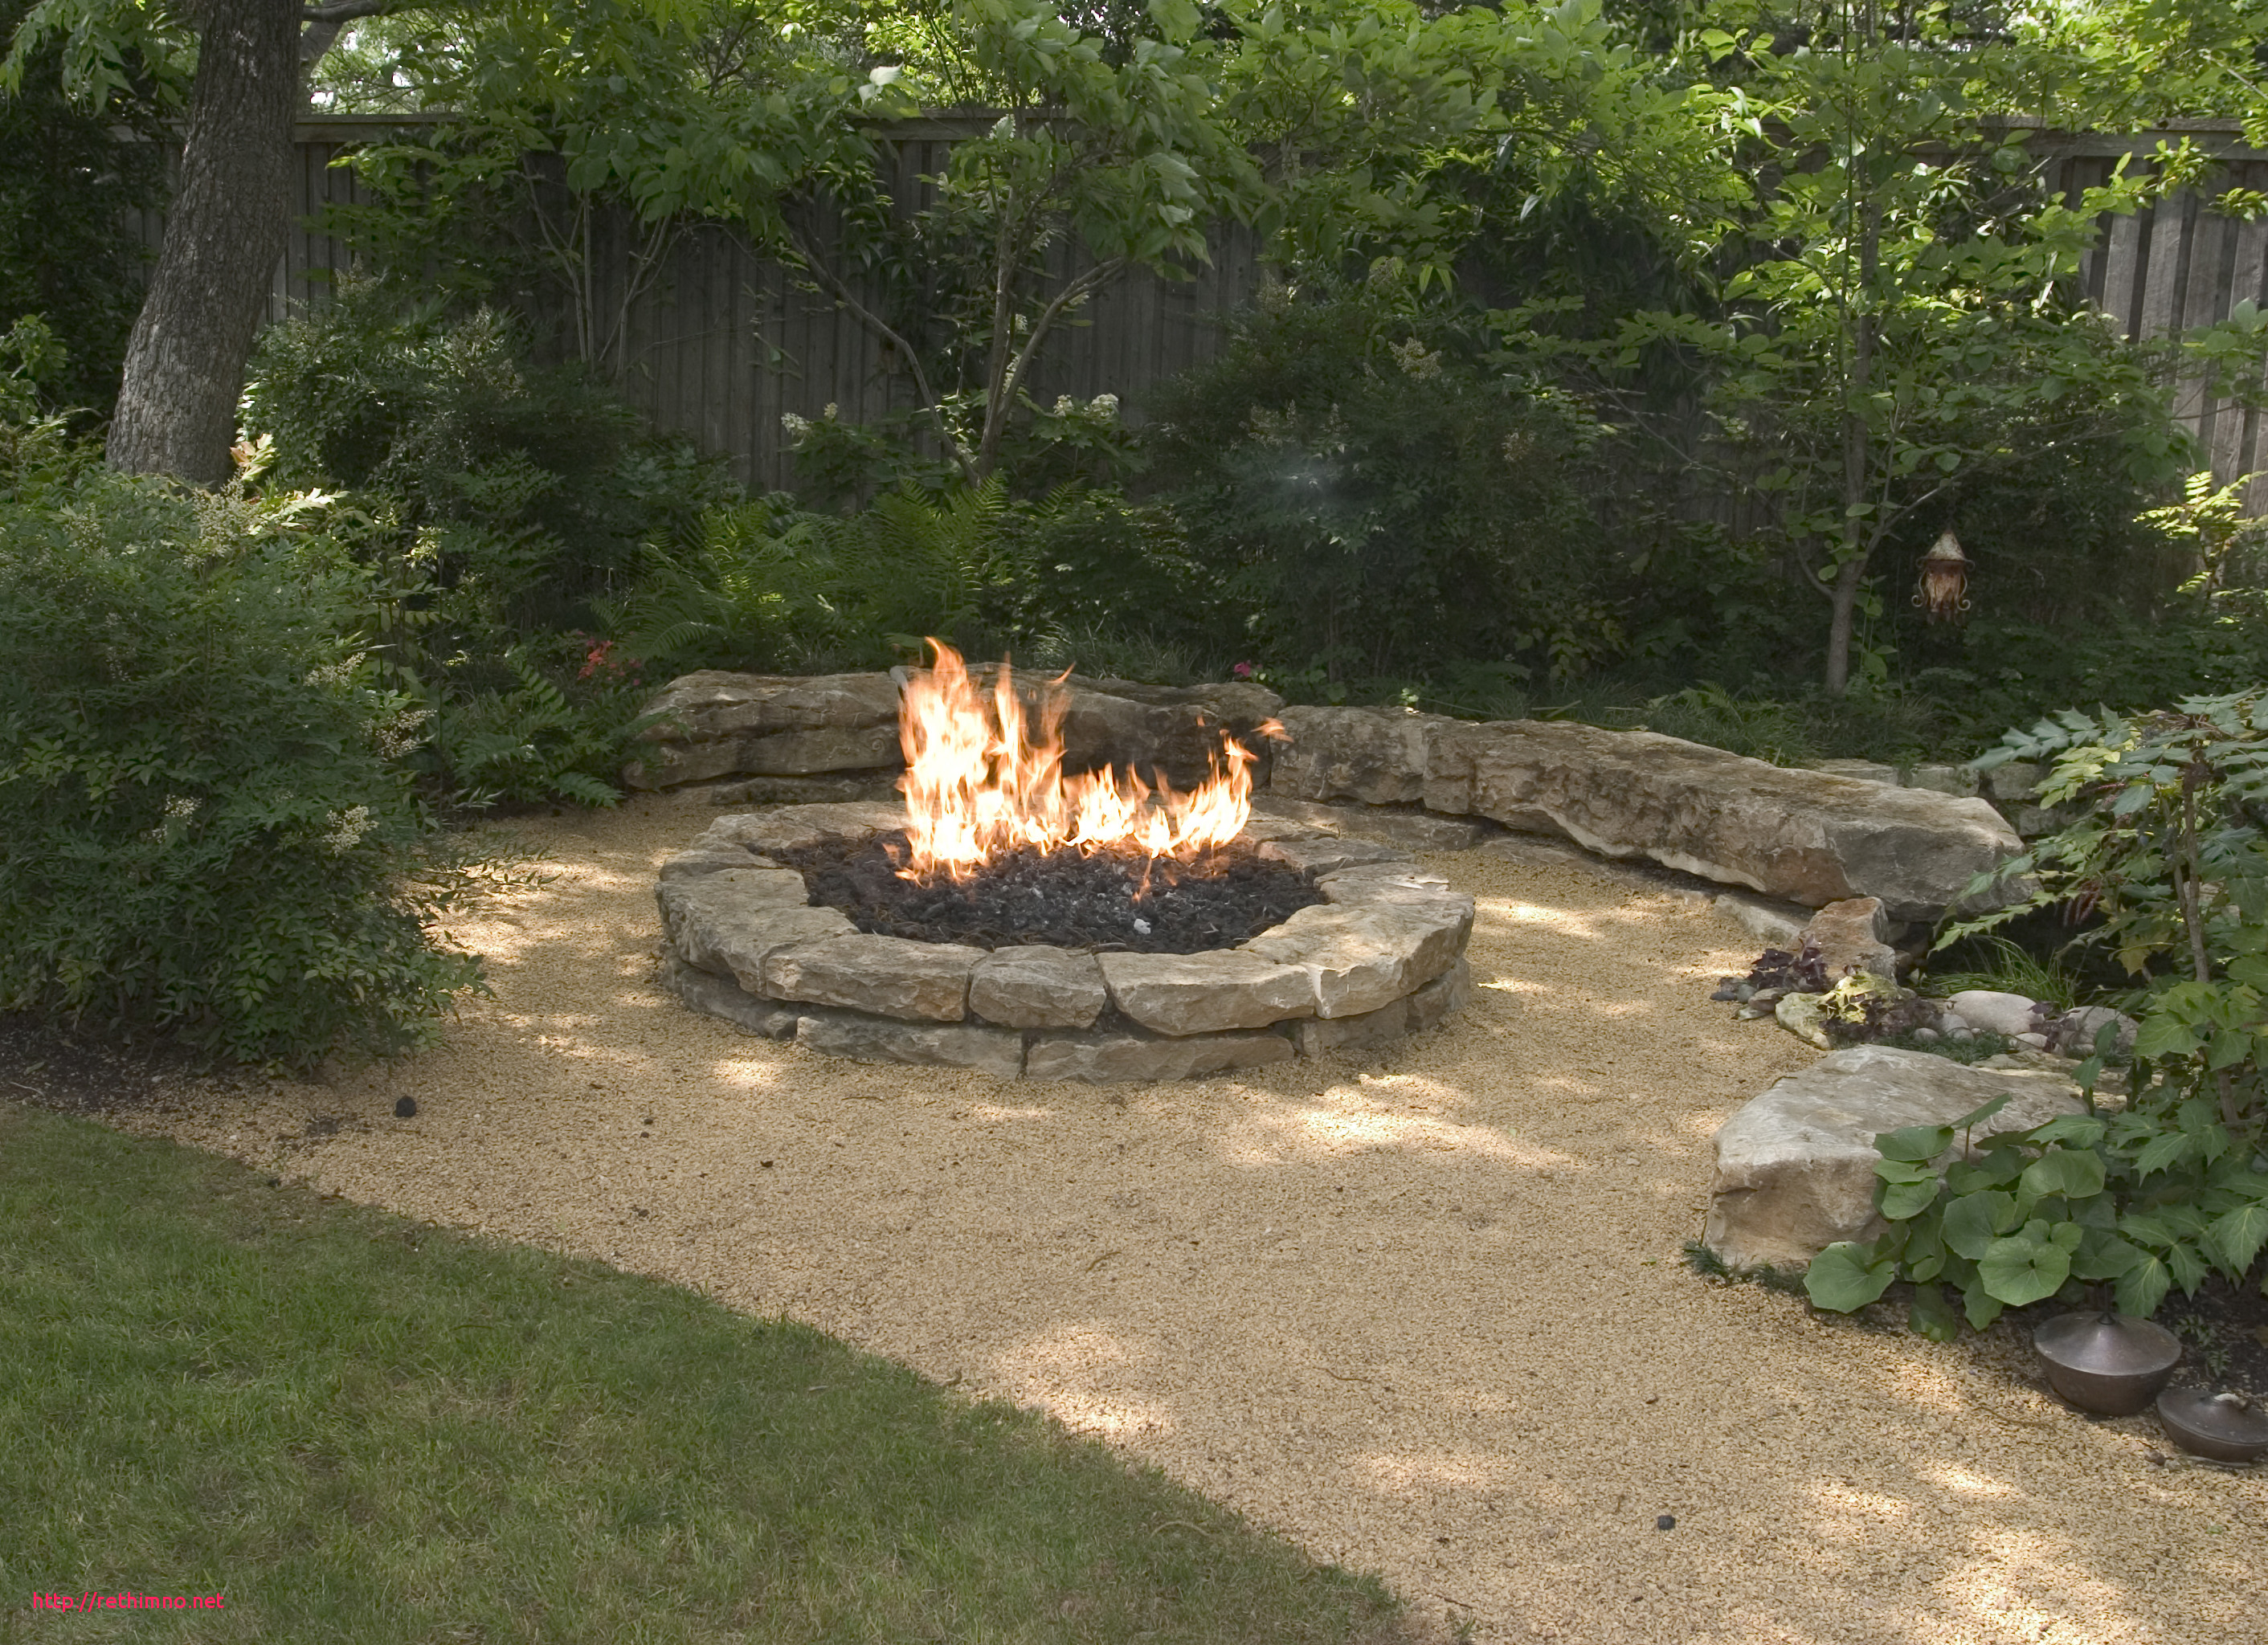 Backyard Fire Pit Design Ideas Fresh Awesome Patio Ideas With Fire intended for 10 Smart Ways How to Makeover Backyard Ideas With Fire Pits